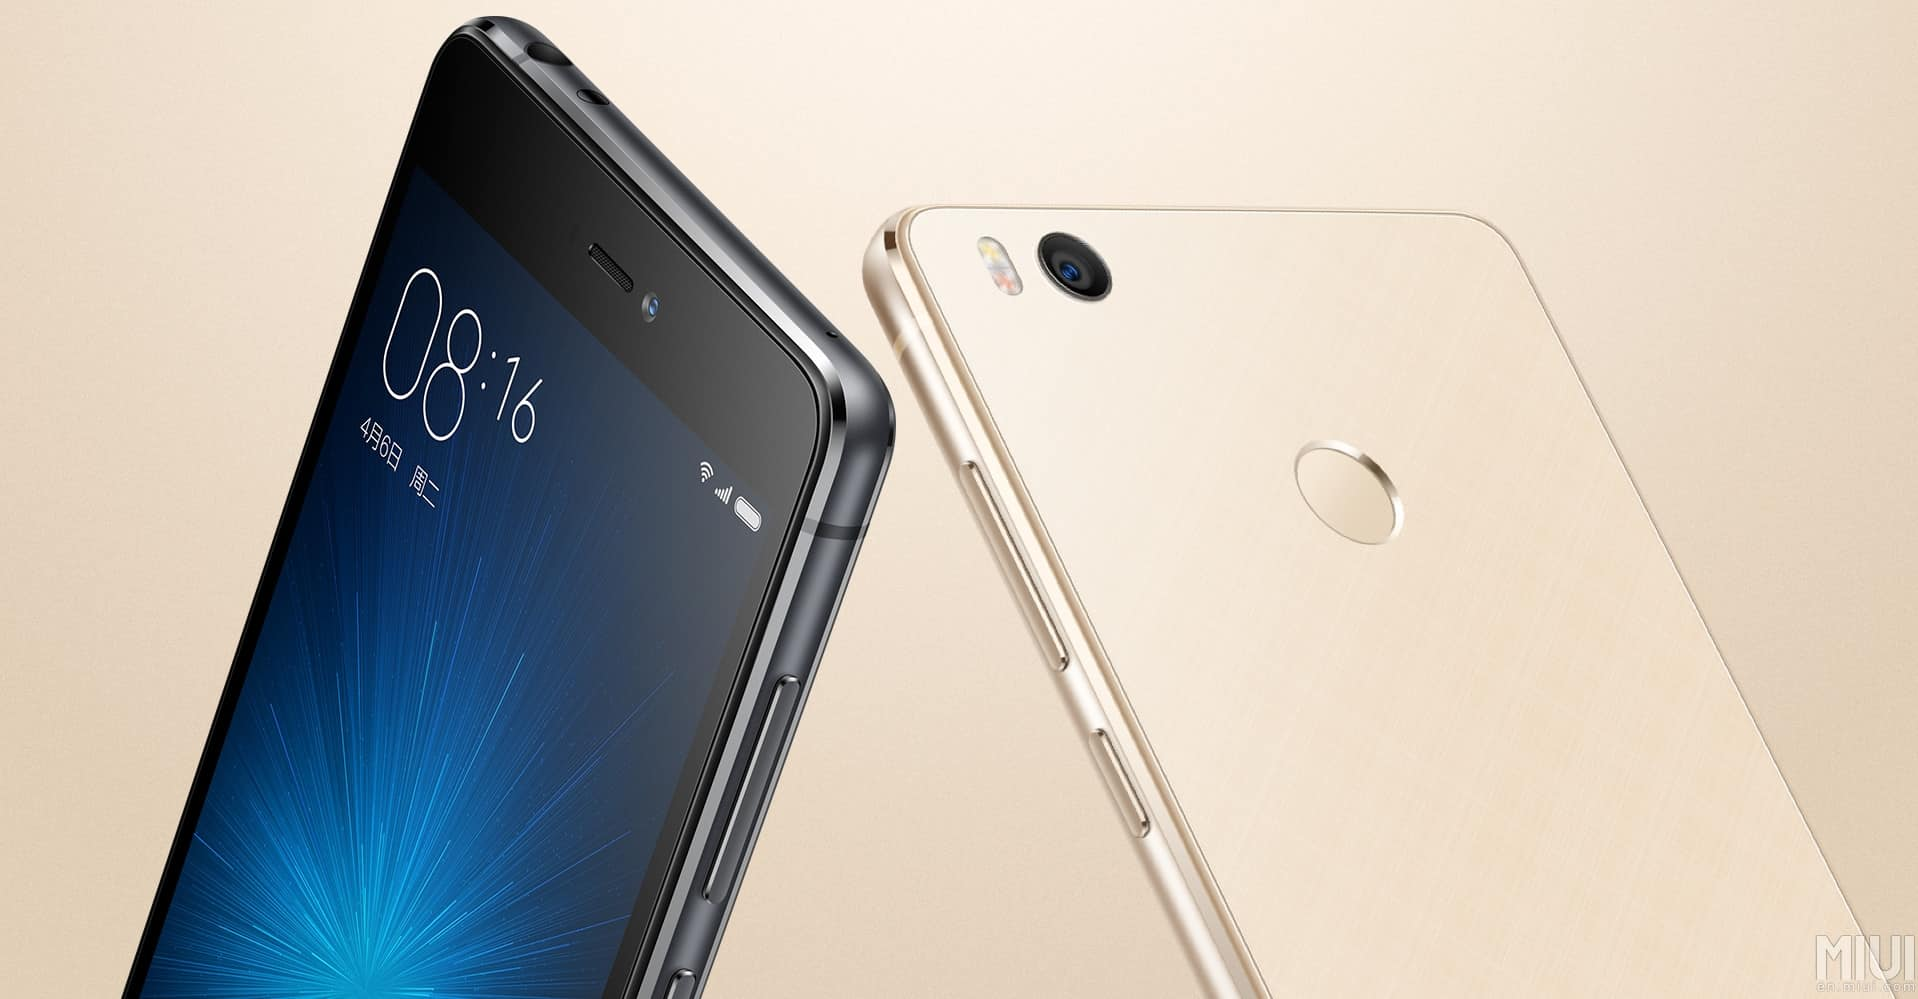 xiaomi mi4s vs xiaomi redmi note 3 pro affordable smartphone for